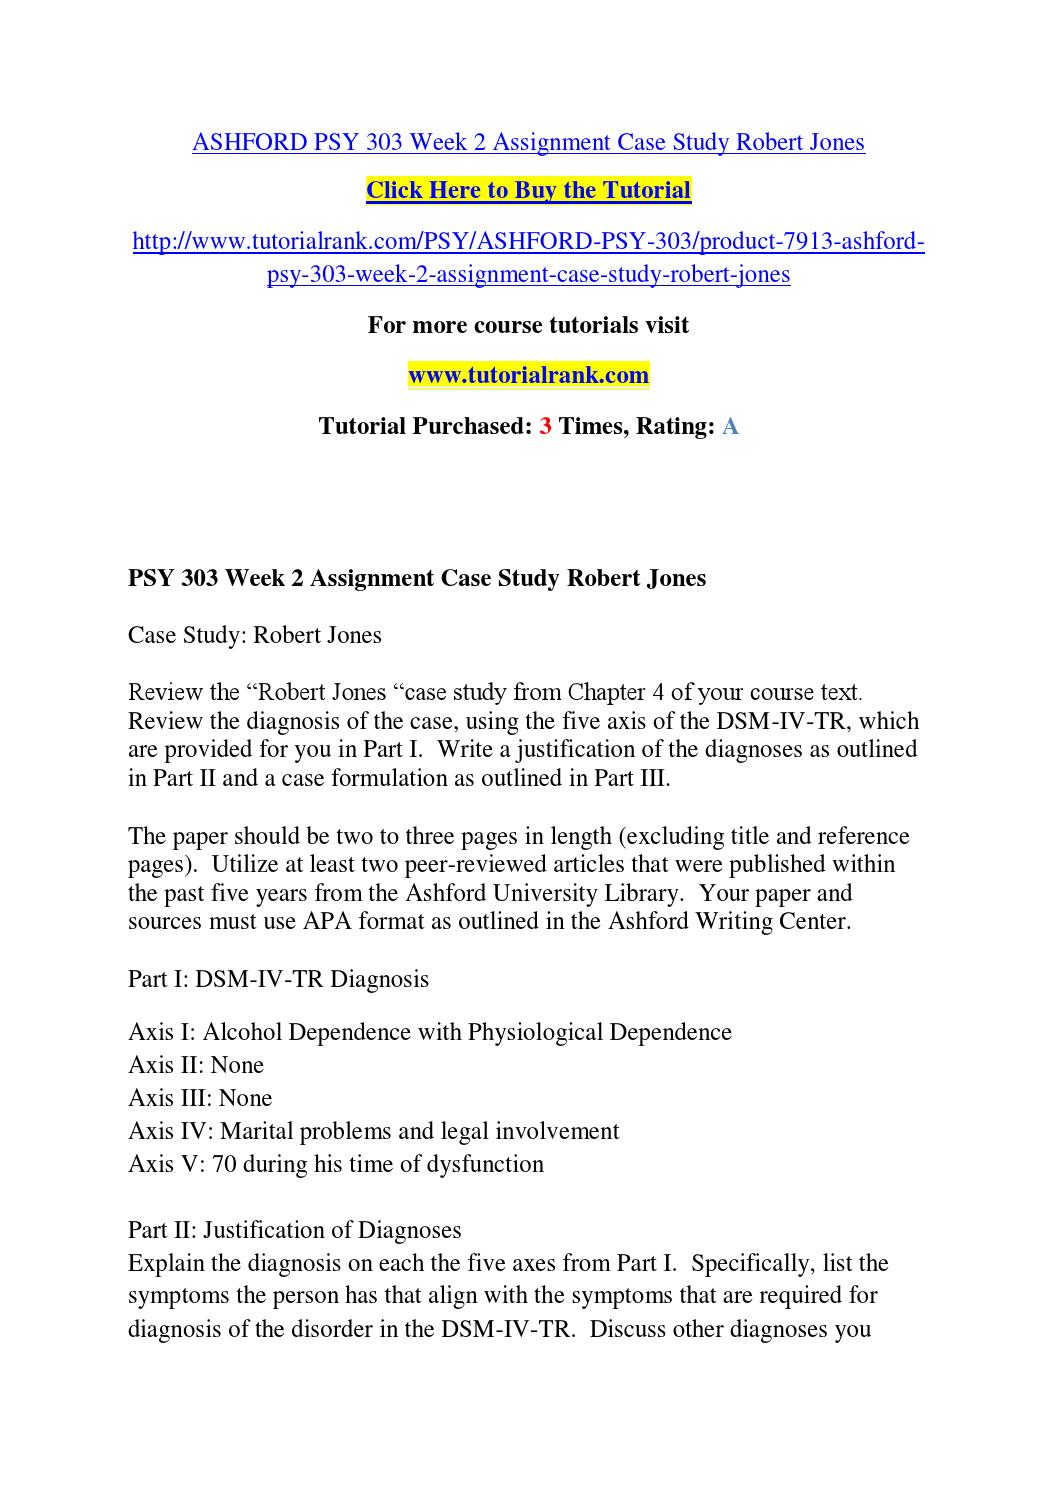 Ashford psy 303 week 2 assignment case study robert jones by